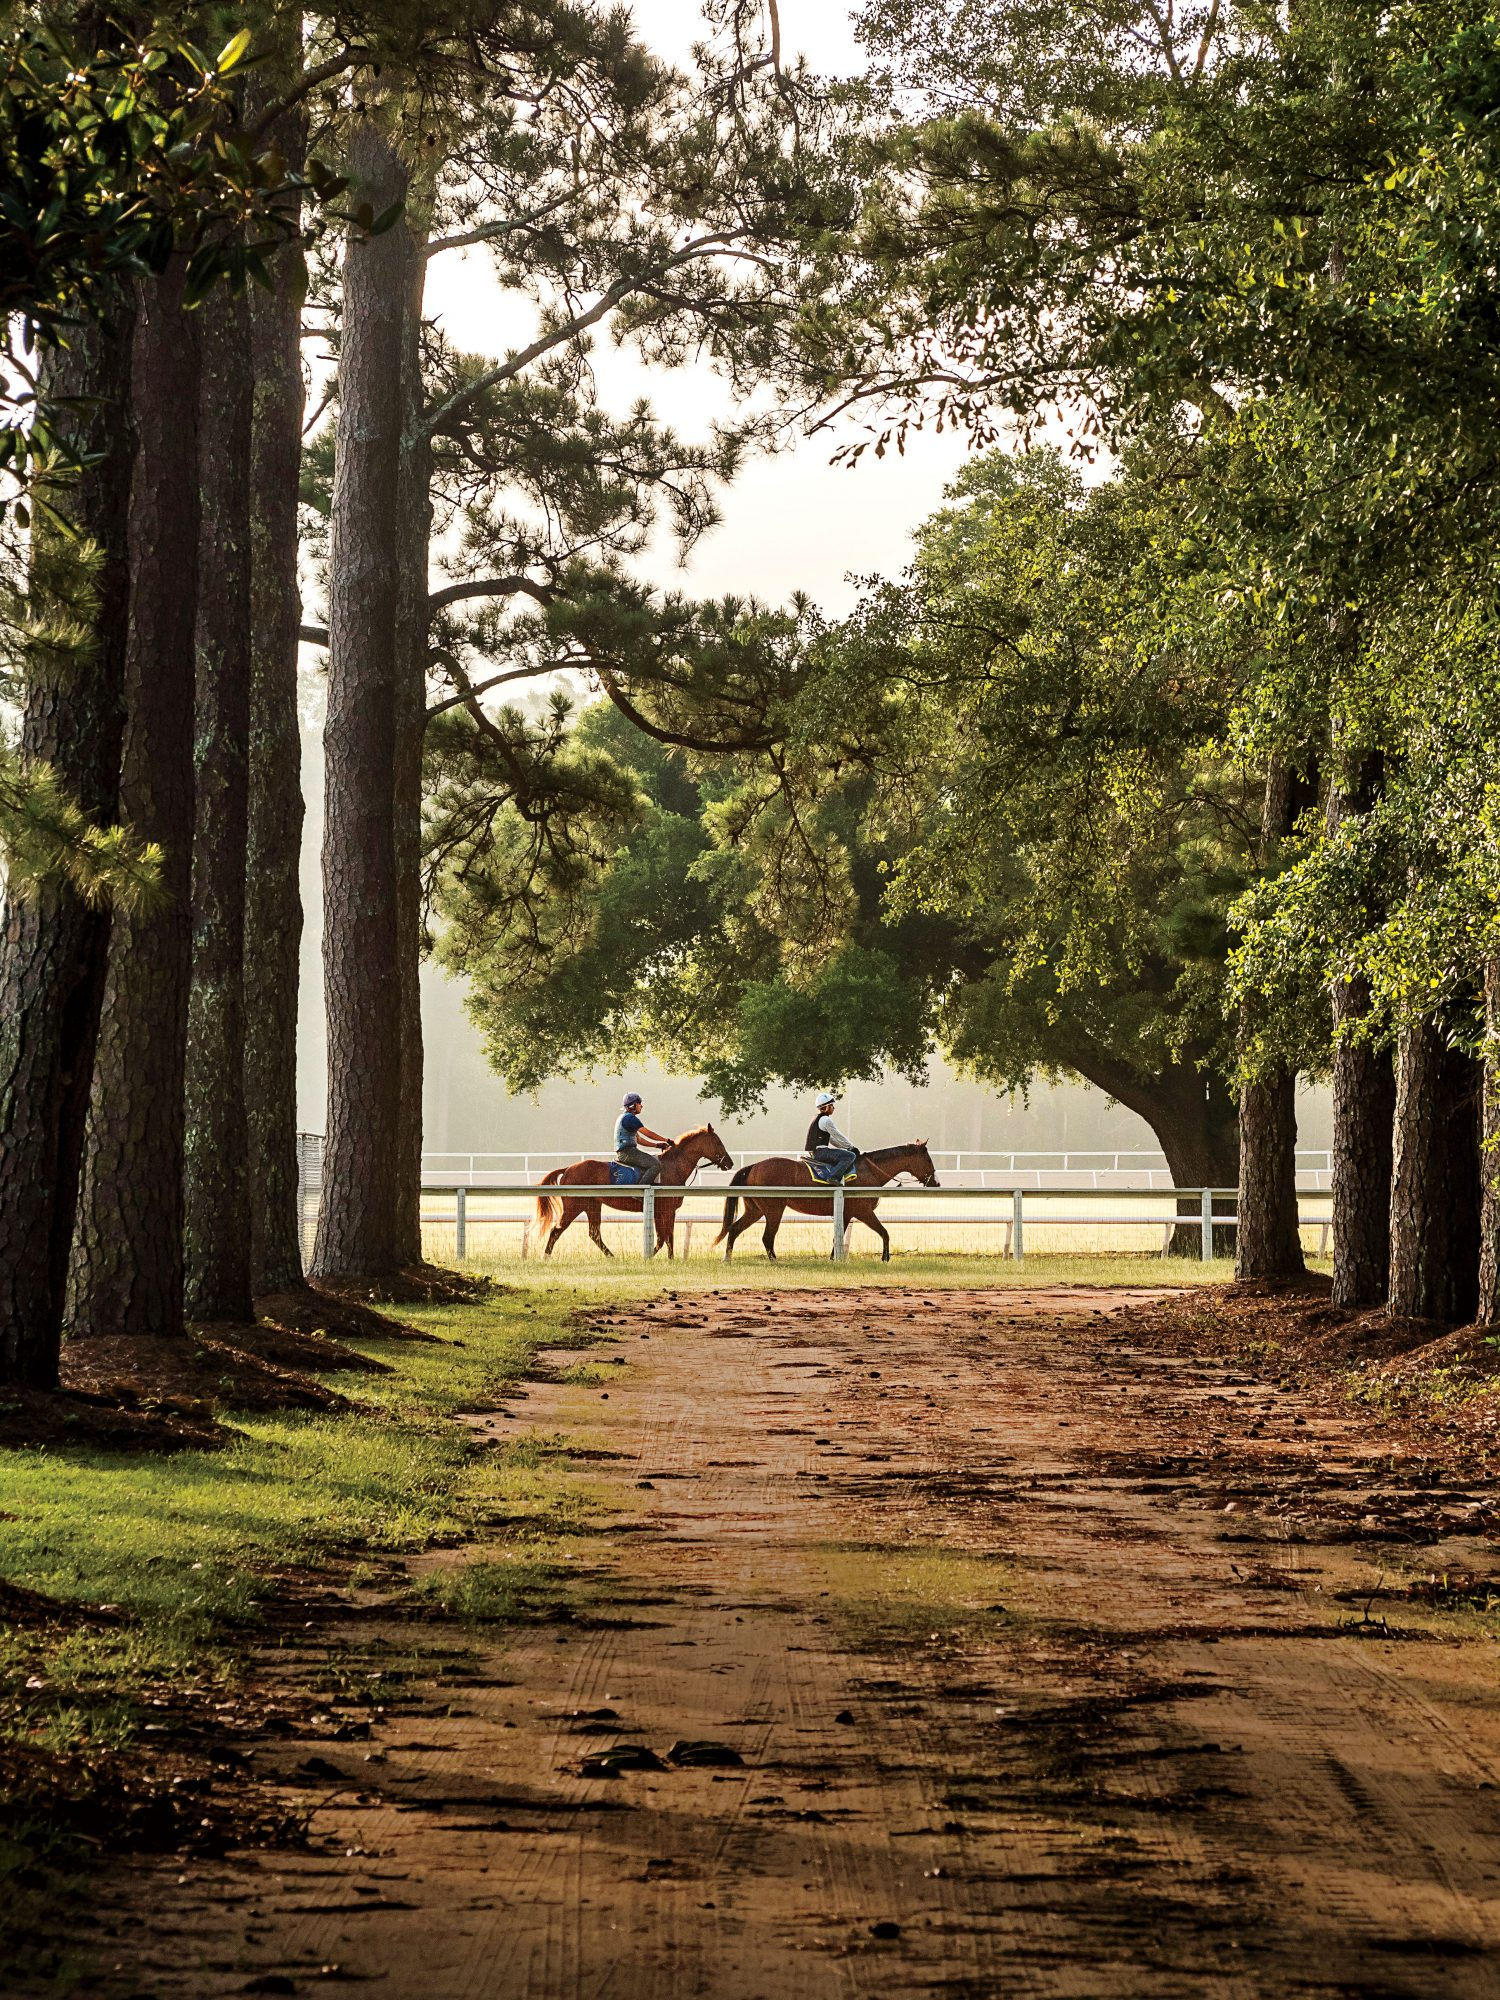 Equestrians in Aiken, South Carolina